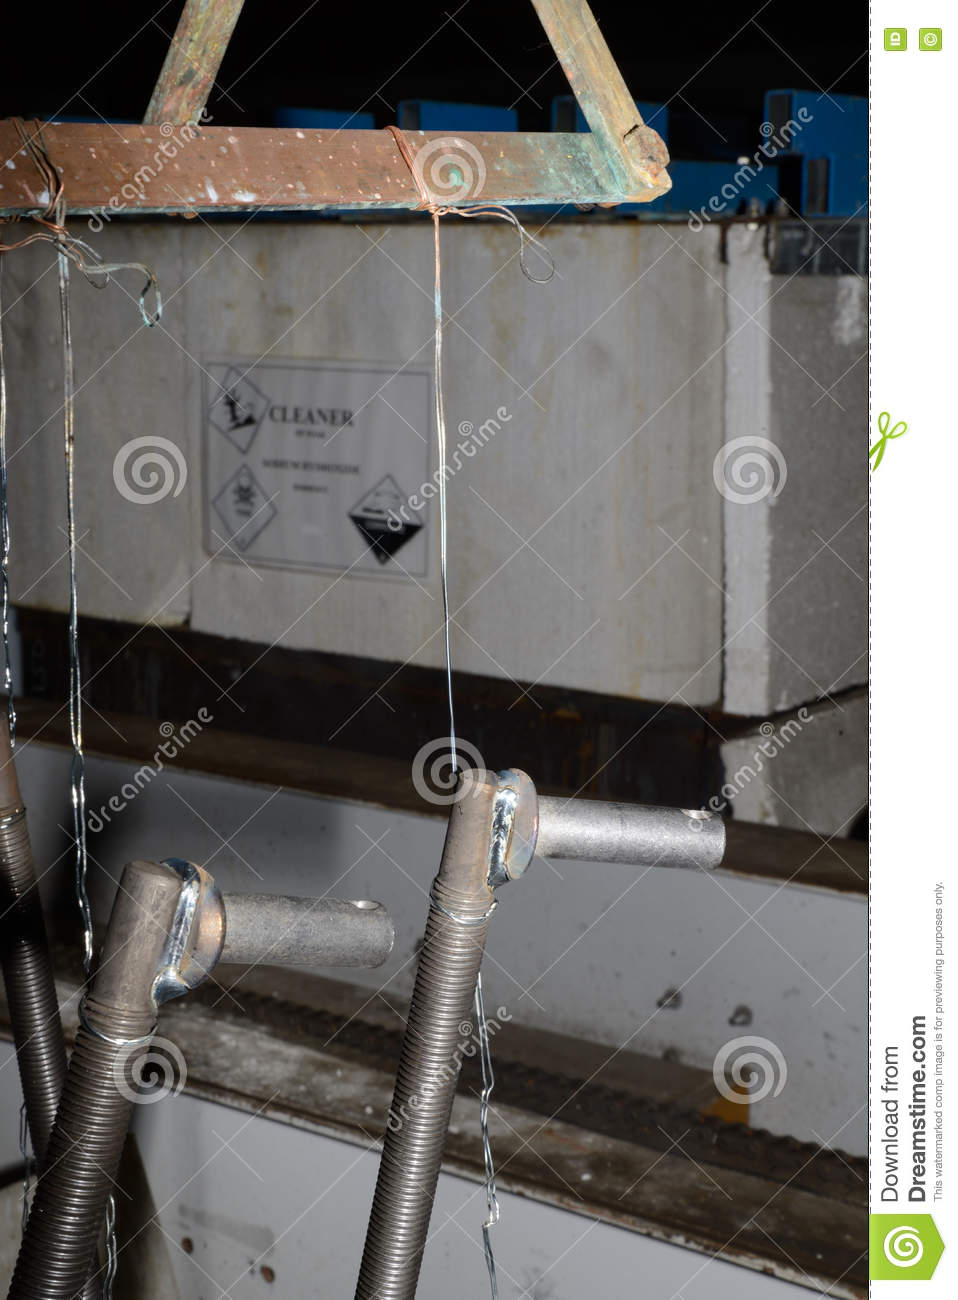 All wired up stock photo  Image of metal, cleaner, industrial - 78442710